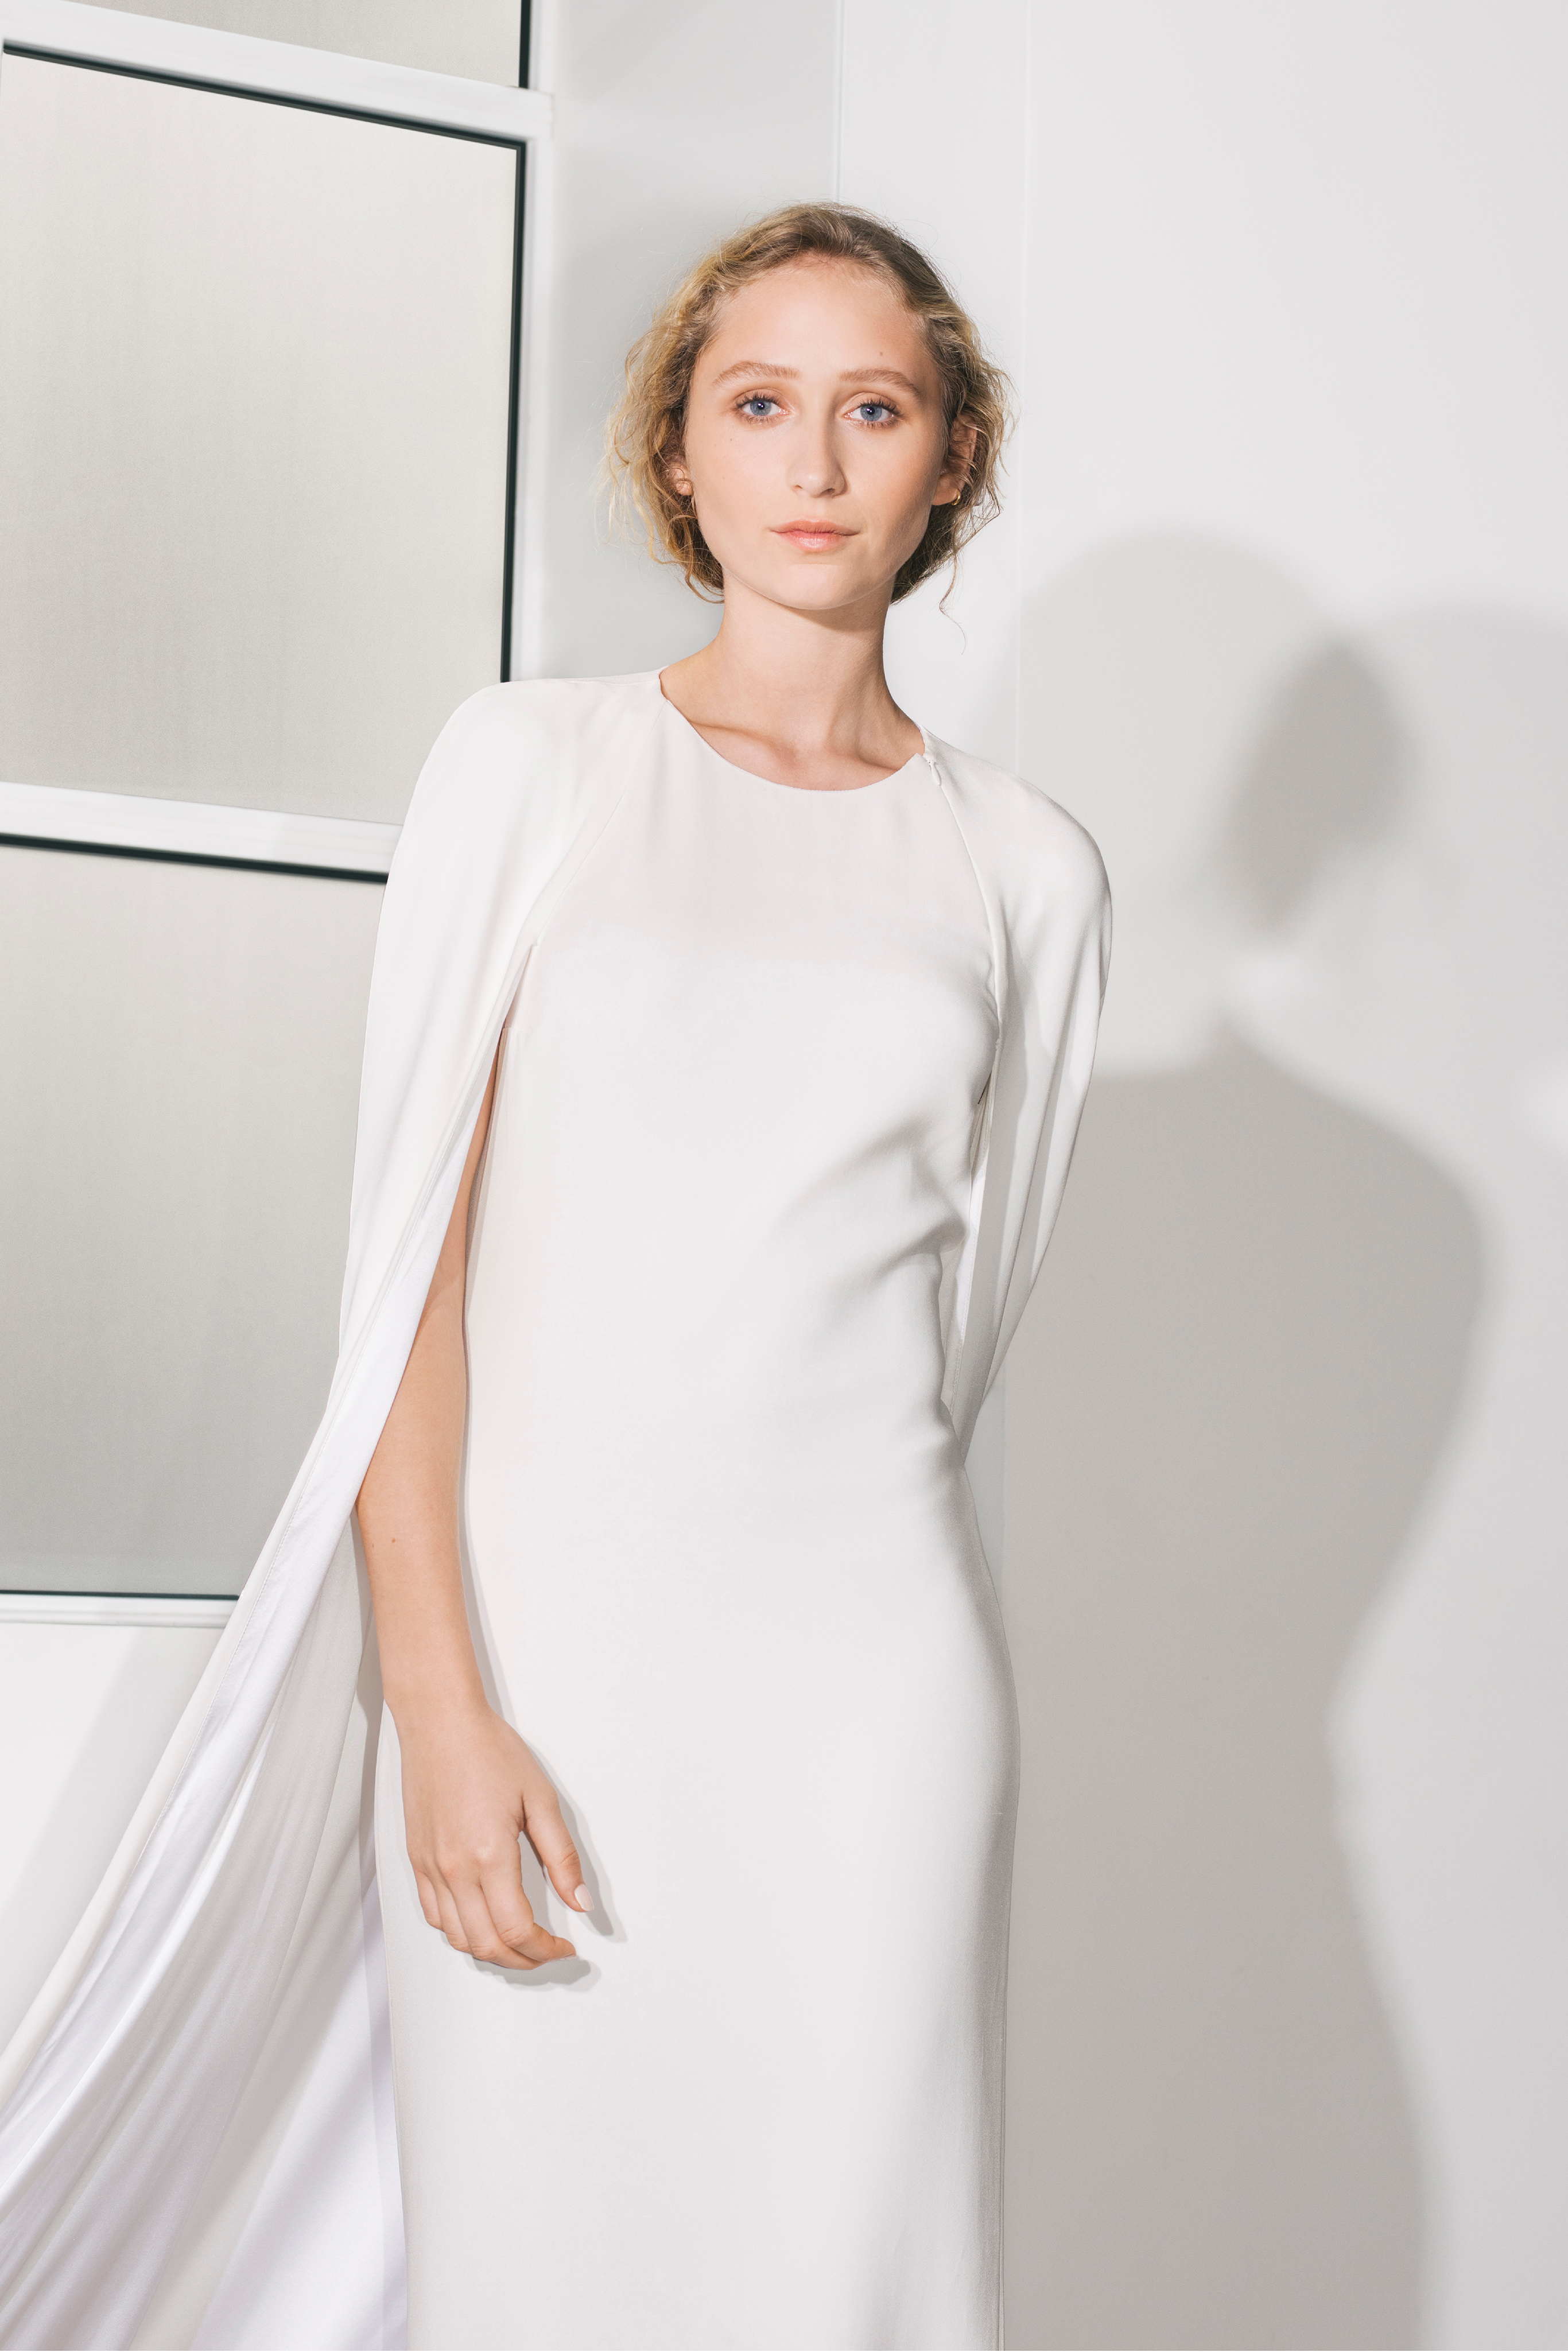 Stella Mccartney Launched Her First Wedding Dress Collection